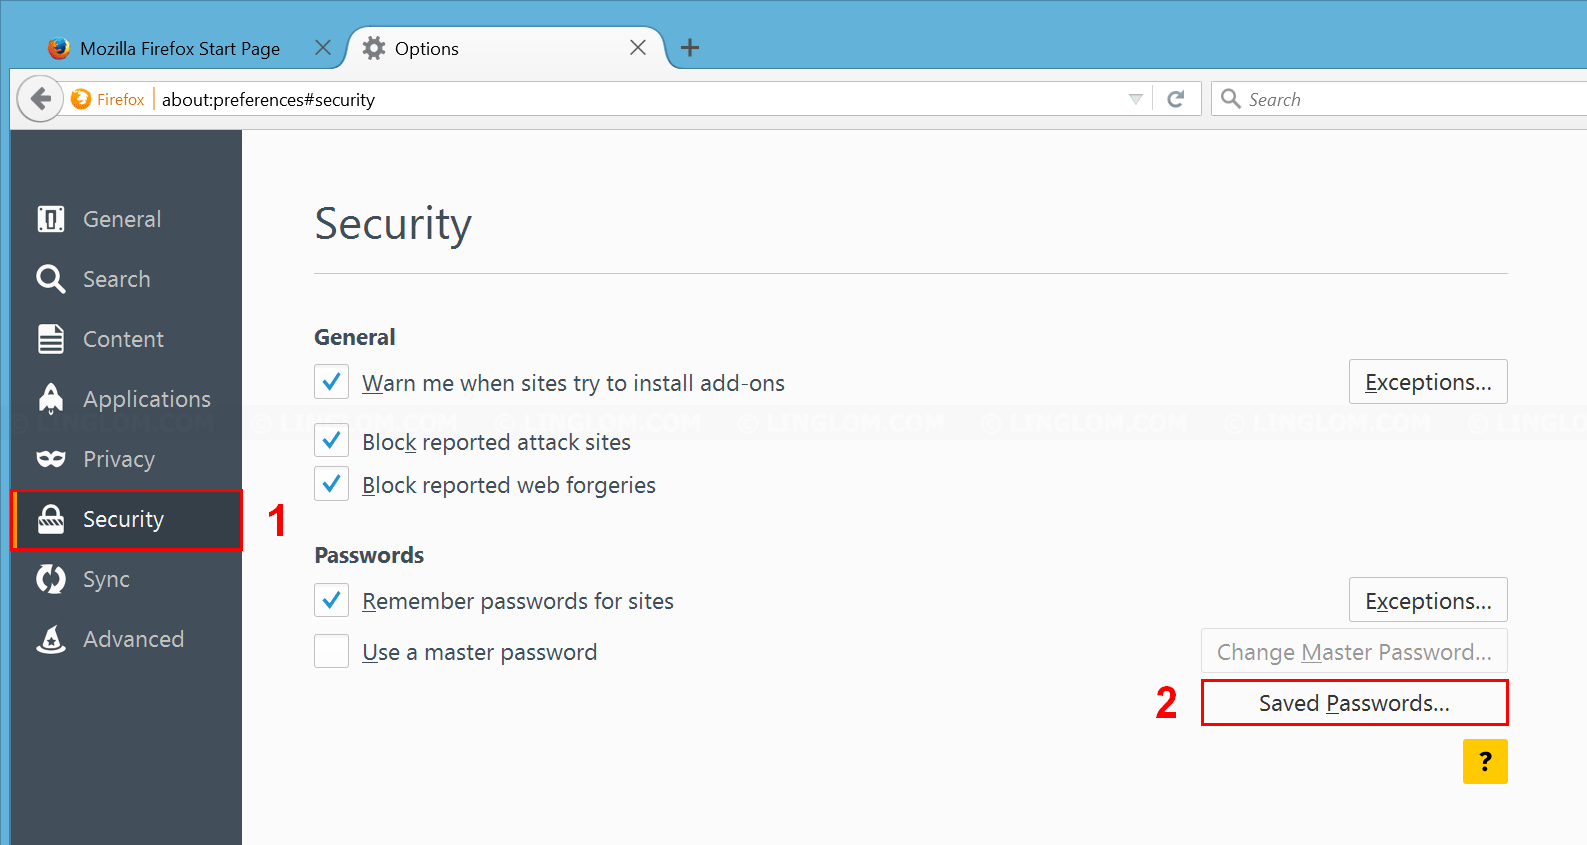 Open 'Saved Passwords' on Firefox